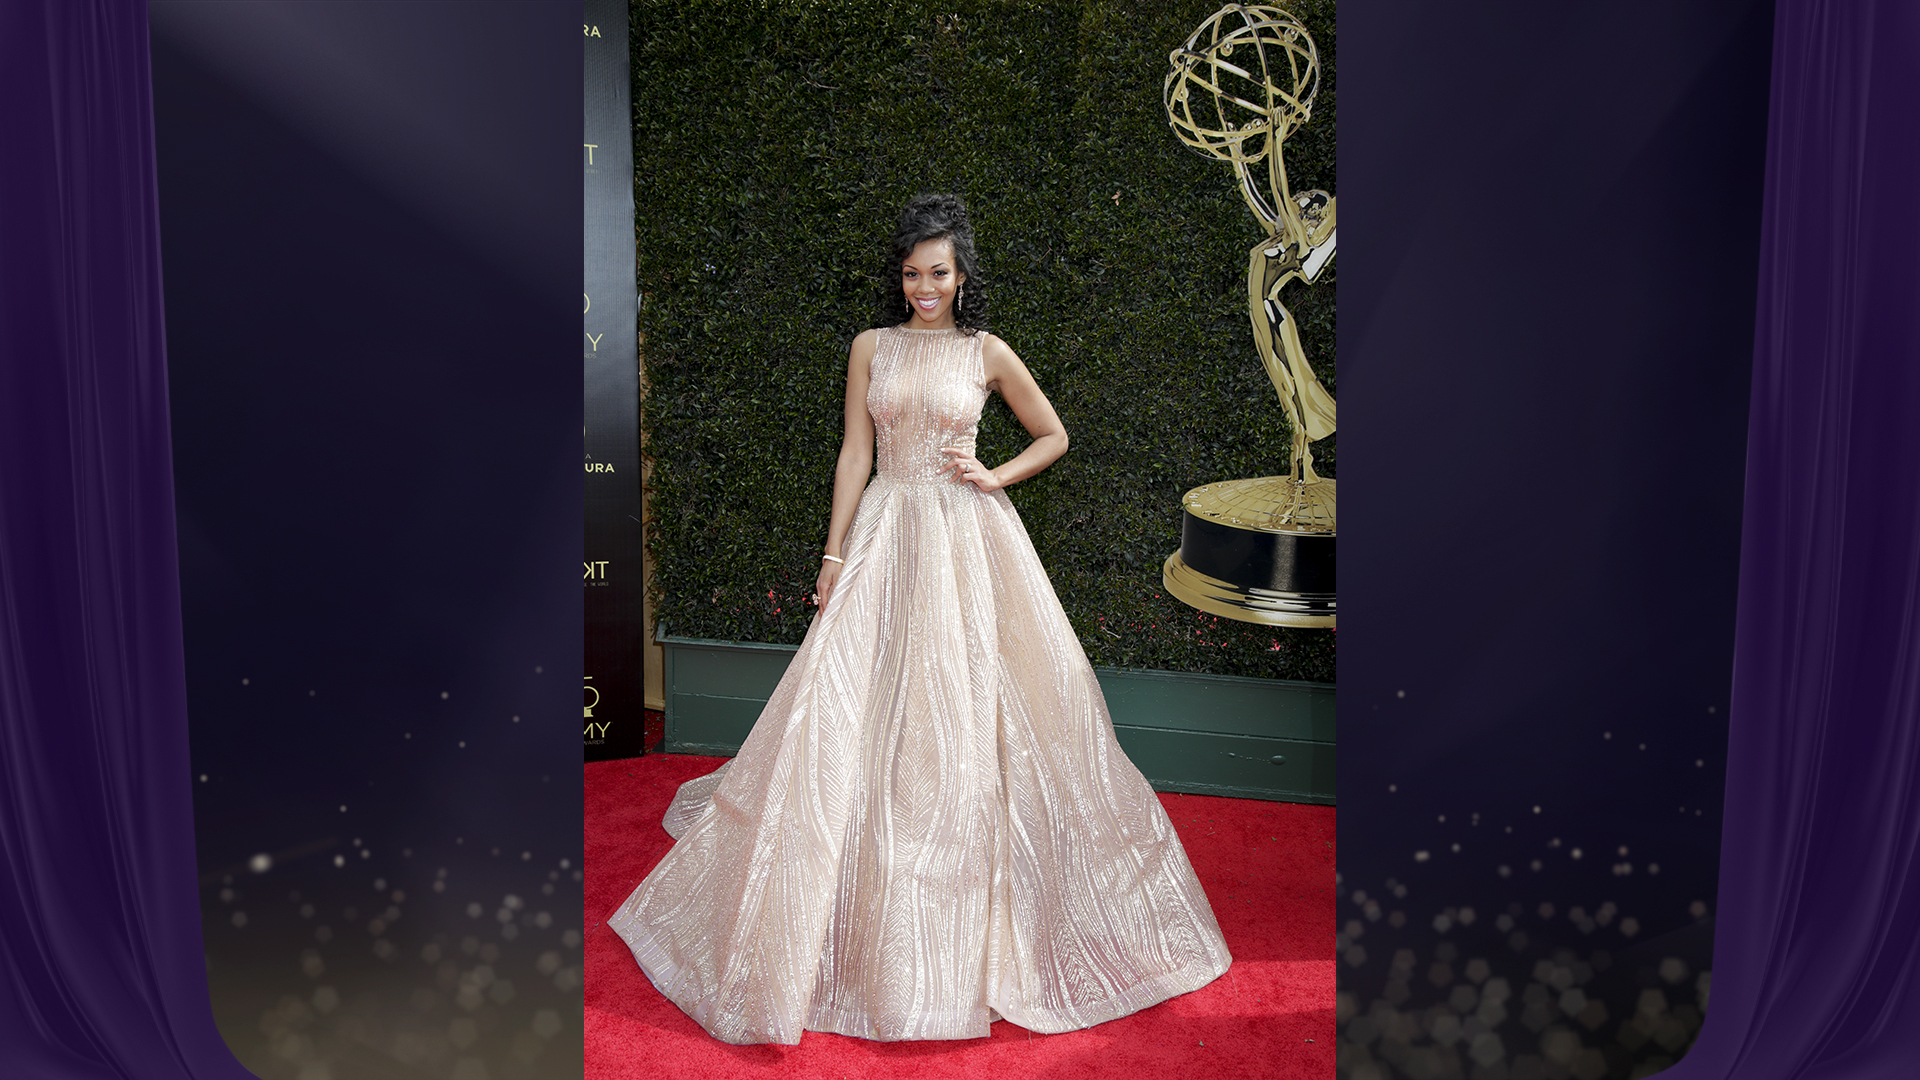 Y&R star Mishael Morgan, who's nominated for Outstanding Supporting Actress in a Drama Series, rocks a glittery high-neck gown with detailed beading.